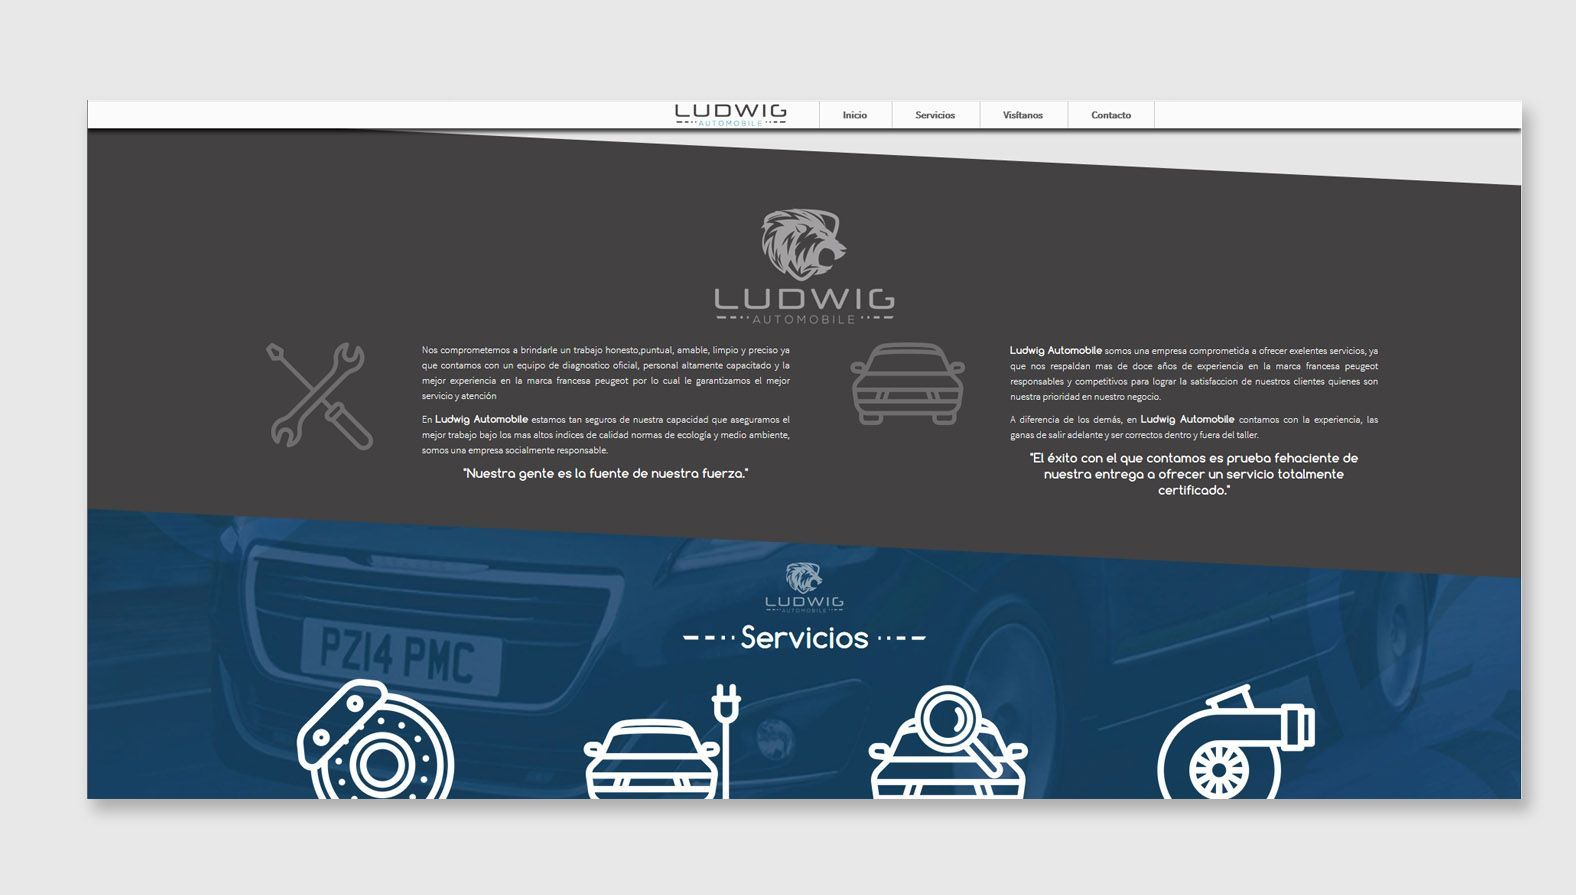 Ludwig Automobile